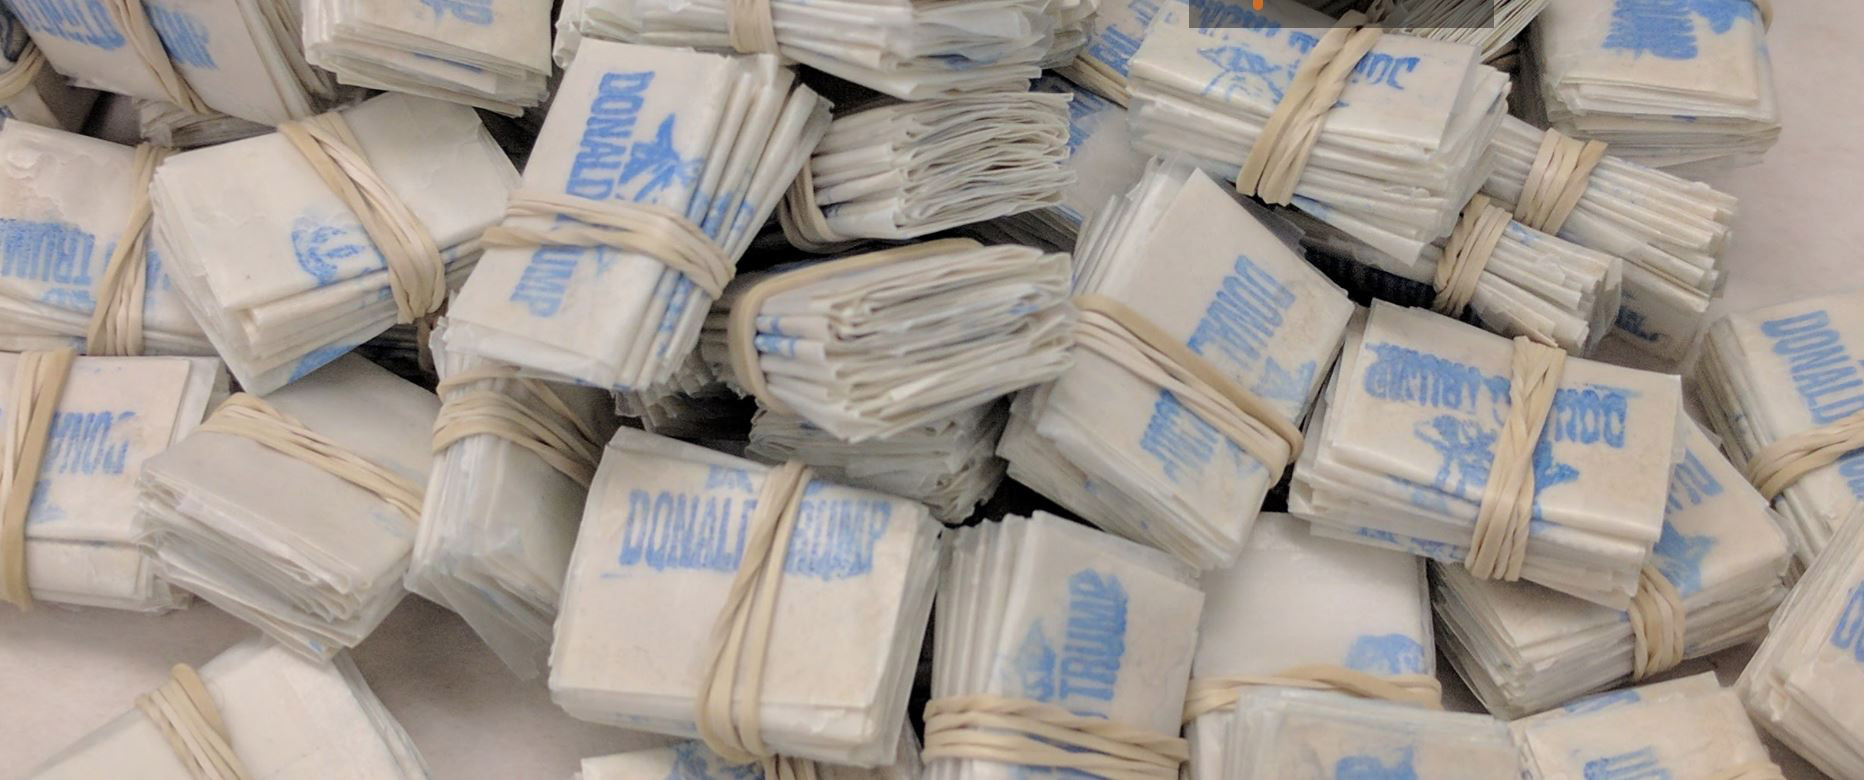 Packets of heroin stamped with Donald Trump's name.